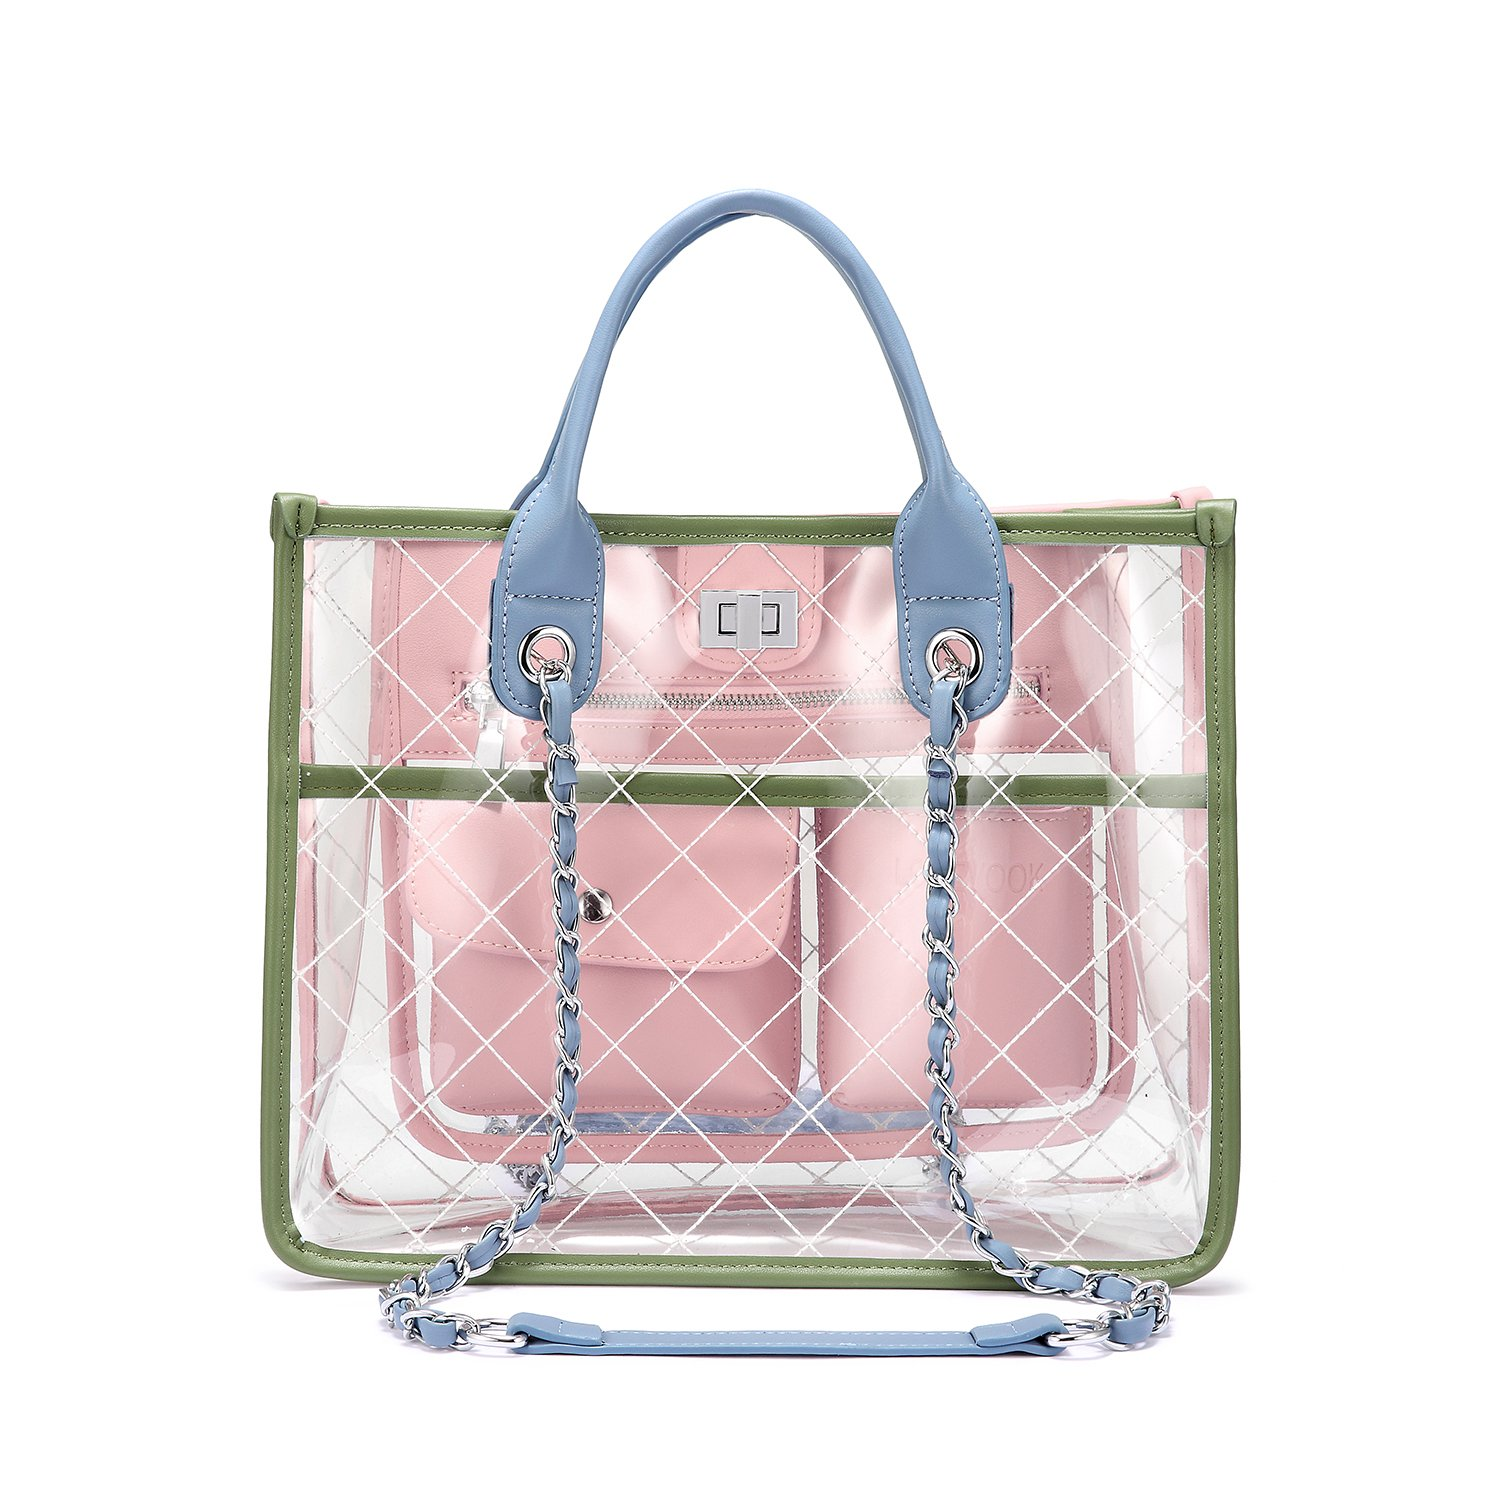 clip freeuse Lovevook luxury for women. Transparent handbag